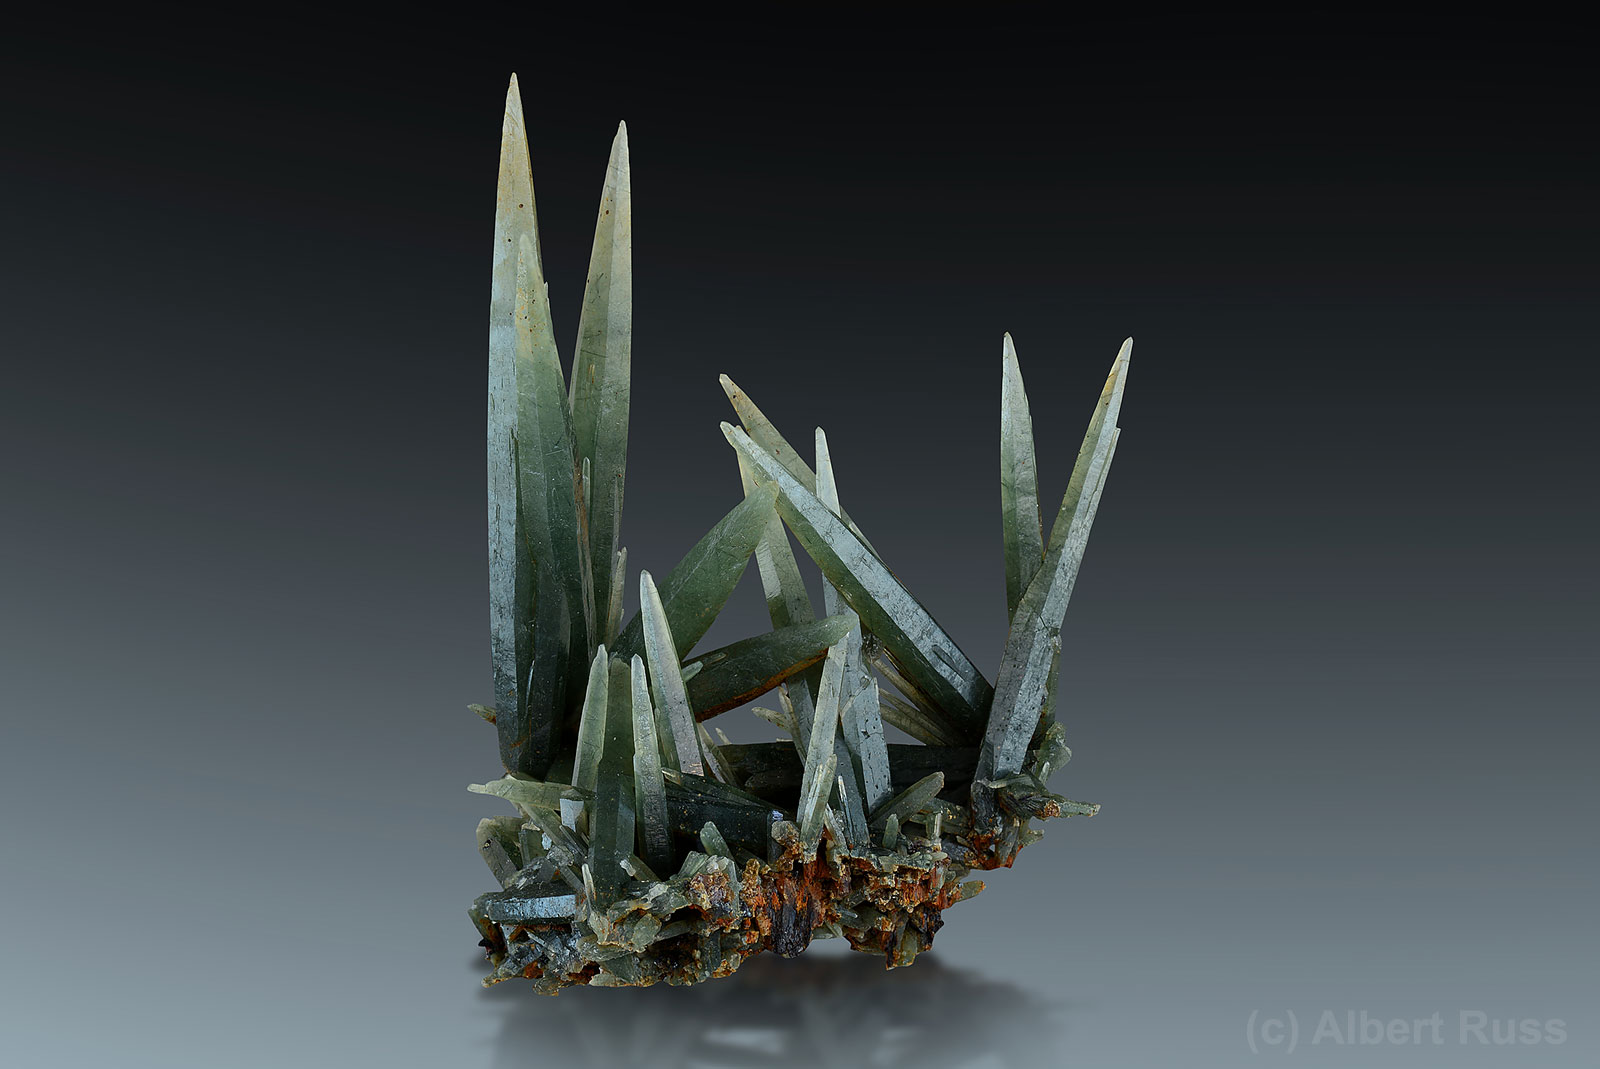 Prasem (green quartz) crystals from Serifos, Greece